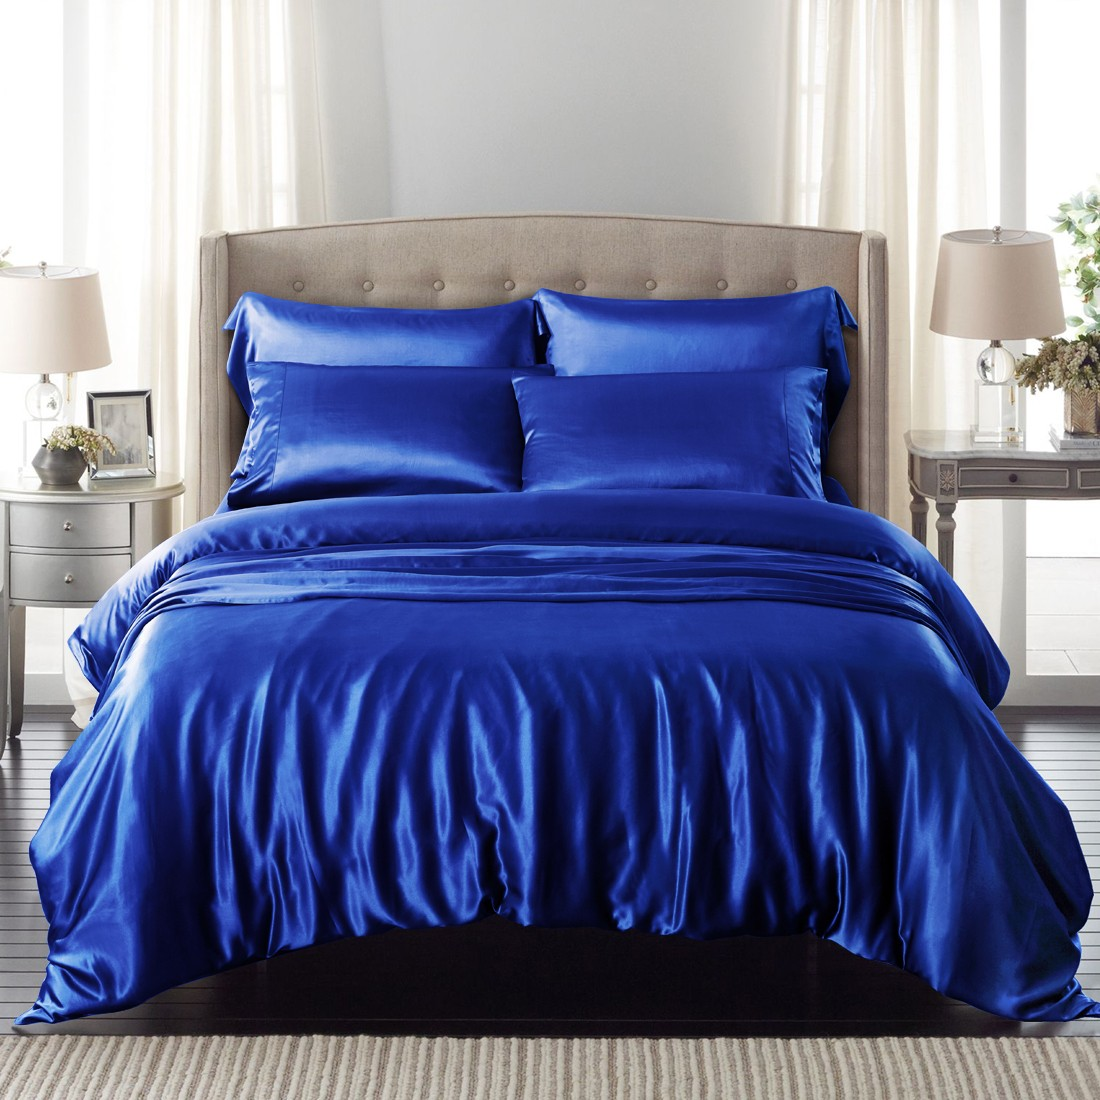 Silk Bedding Of High Quality Mulberry Silk Blue